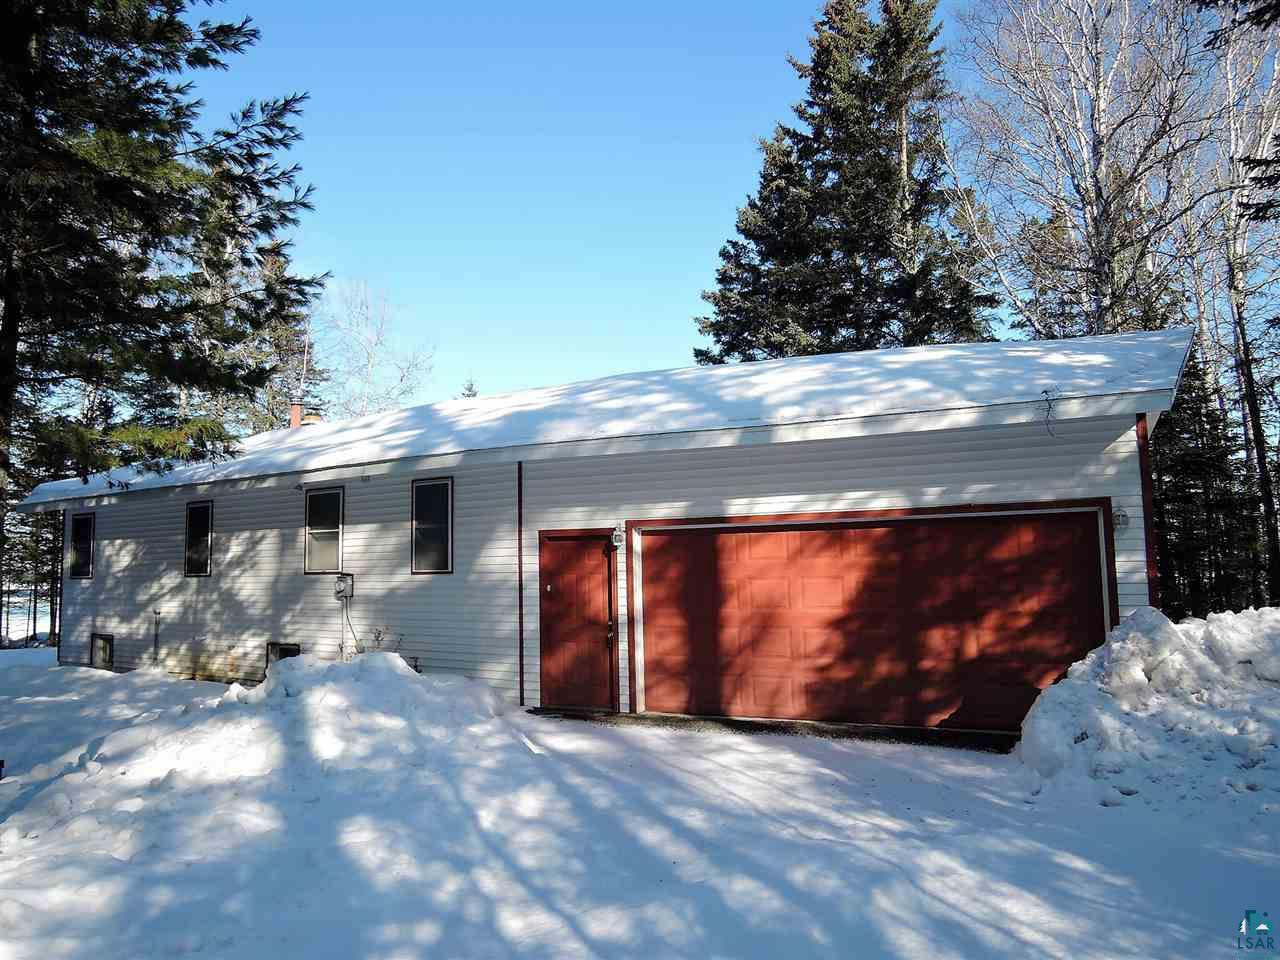 """Great location on the scenic South Shore of Lake Superior. Beautiful 1.8-acre property with mature tall pine and birch trees on 255' of Lake Superior, (with a certified survey). This year-round home features an open concept dining and living room area with energy-efficient windows that lets in plenty of natural light. The living room includes a bay window with picture-like views of Lake Superior and beautiful bookcases surrounding a wood fireplace to relax with a cozy fire or read a book. There are also great views from the dining room and kitchen while you are cooking or washing dishes, with ample counter top and cupboard space. The dining room leads out to a deck overlooking the Lake, where you can sit and have your morning coffee or entertain your family and friends.  There are two spacious bedrooms as well as a possible 3rd bedroom/office/workout room in the basement. The second bedroom is arranged as a Den/Guest room with a hideaway bed. In the utility room, there is a washer and dryer, along with plenty of storage and pantry. There is also a cute three-season cottage with power and lights for extra room for guests to sleep or just an area for relaxing listening to the waves and watch stunning Lake Superior sunset views. This property boasts a high-speed, fiber-optic, wireless internet to watch premium TV channels and a landline phone service provided by Norvado. The basement has a newer sump pump, water softener, forced air furnace, water heater, and three egress windows so you can have a possible third bedroom or nice family room for additional space if needed. Maintenance-free vinyl siding, energy-efficient newer windows, and roof. Low cost for utilities with a conventional septic system and private well with a  water softener unit. Activities for your family in the summer include a seven-mile peninsula offering a beach, camping, boat launch with a small sandy beach area near the tip of Bark Point, and """"Bark Bay Slough"""" Natural Area (522 acres).  There is al"""